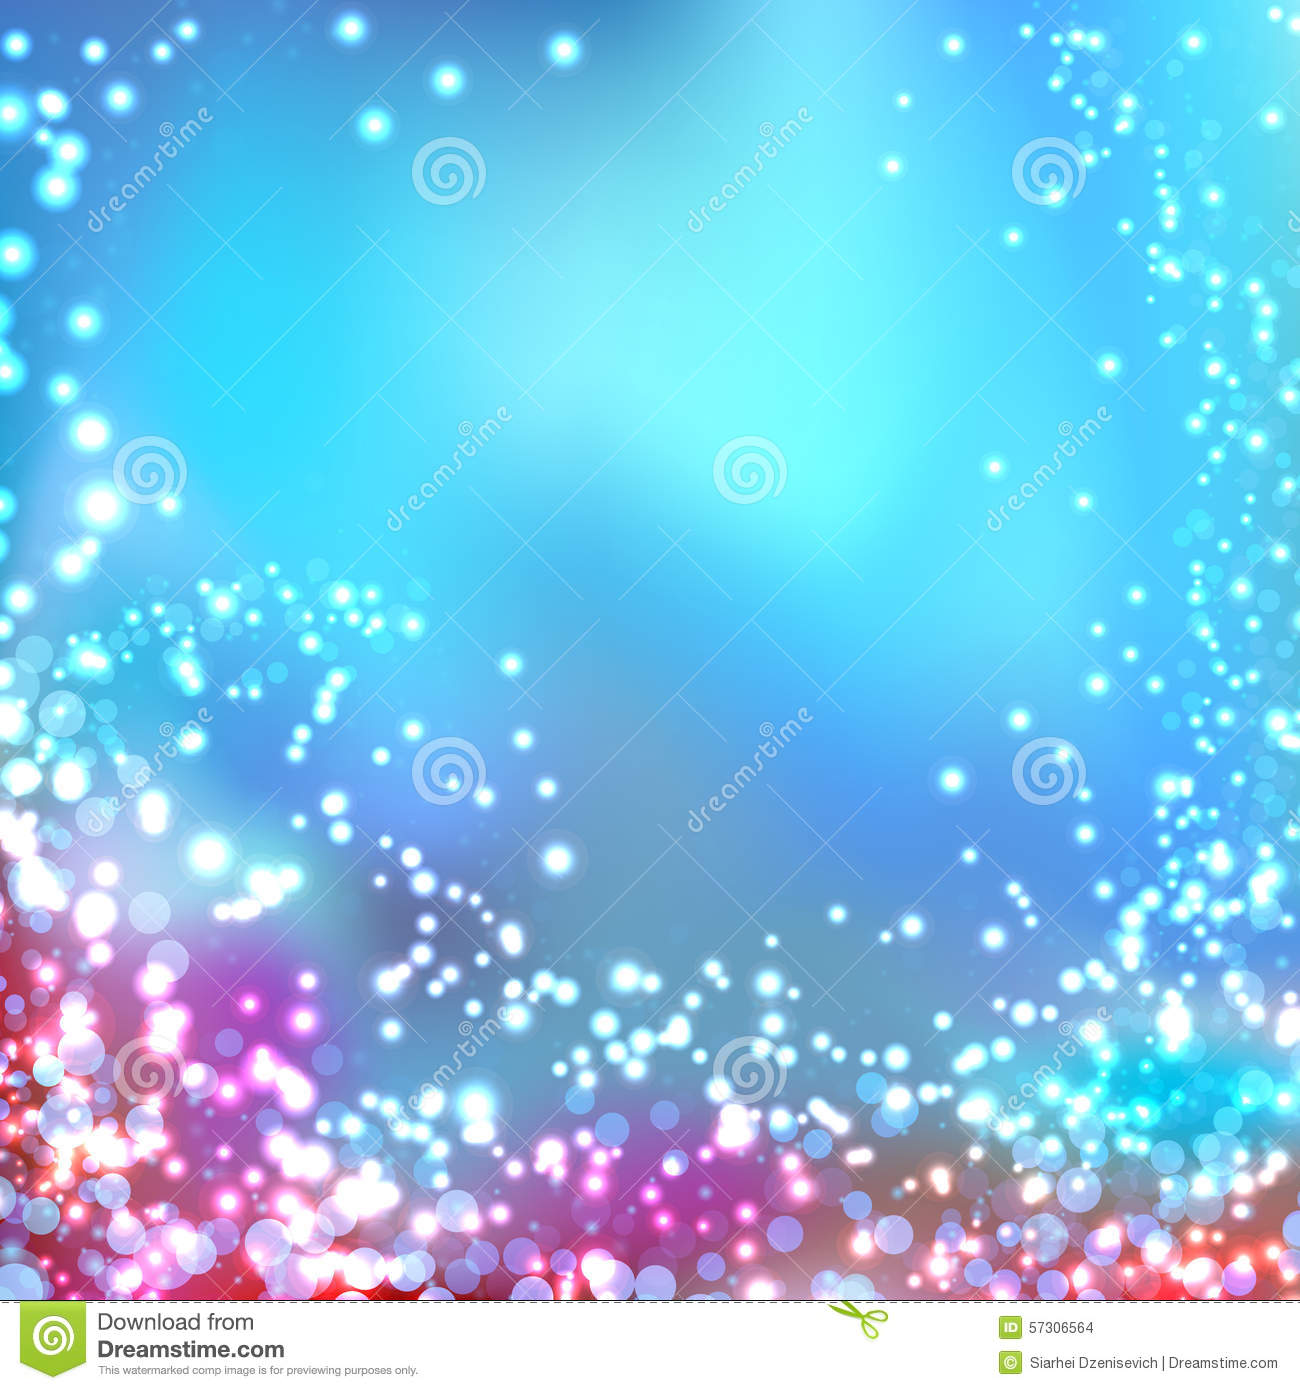 Modern Blurred Abstract Glittering Christmas Background Stock Vector ...